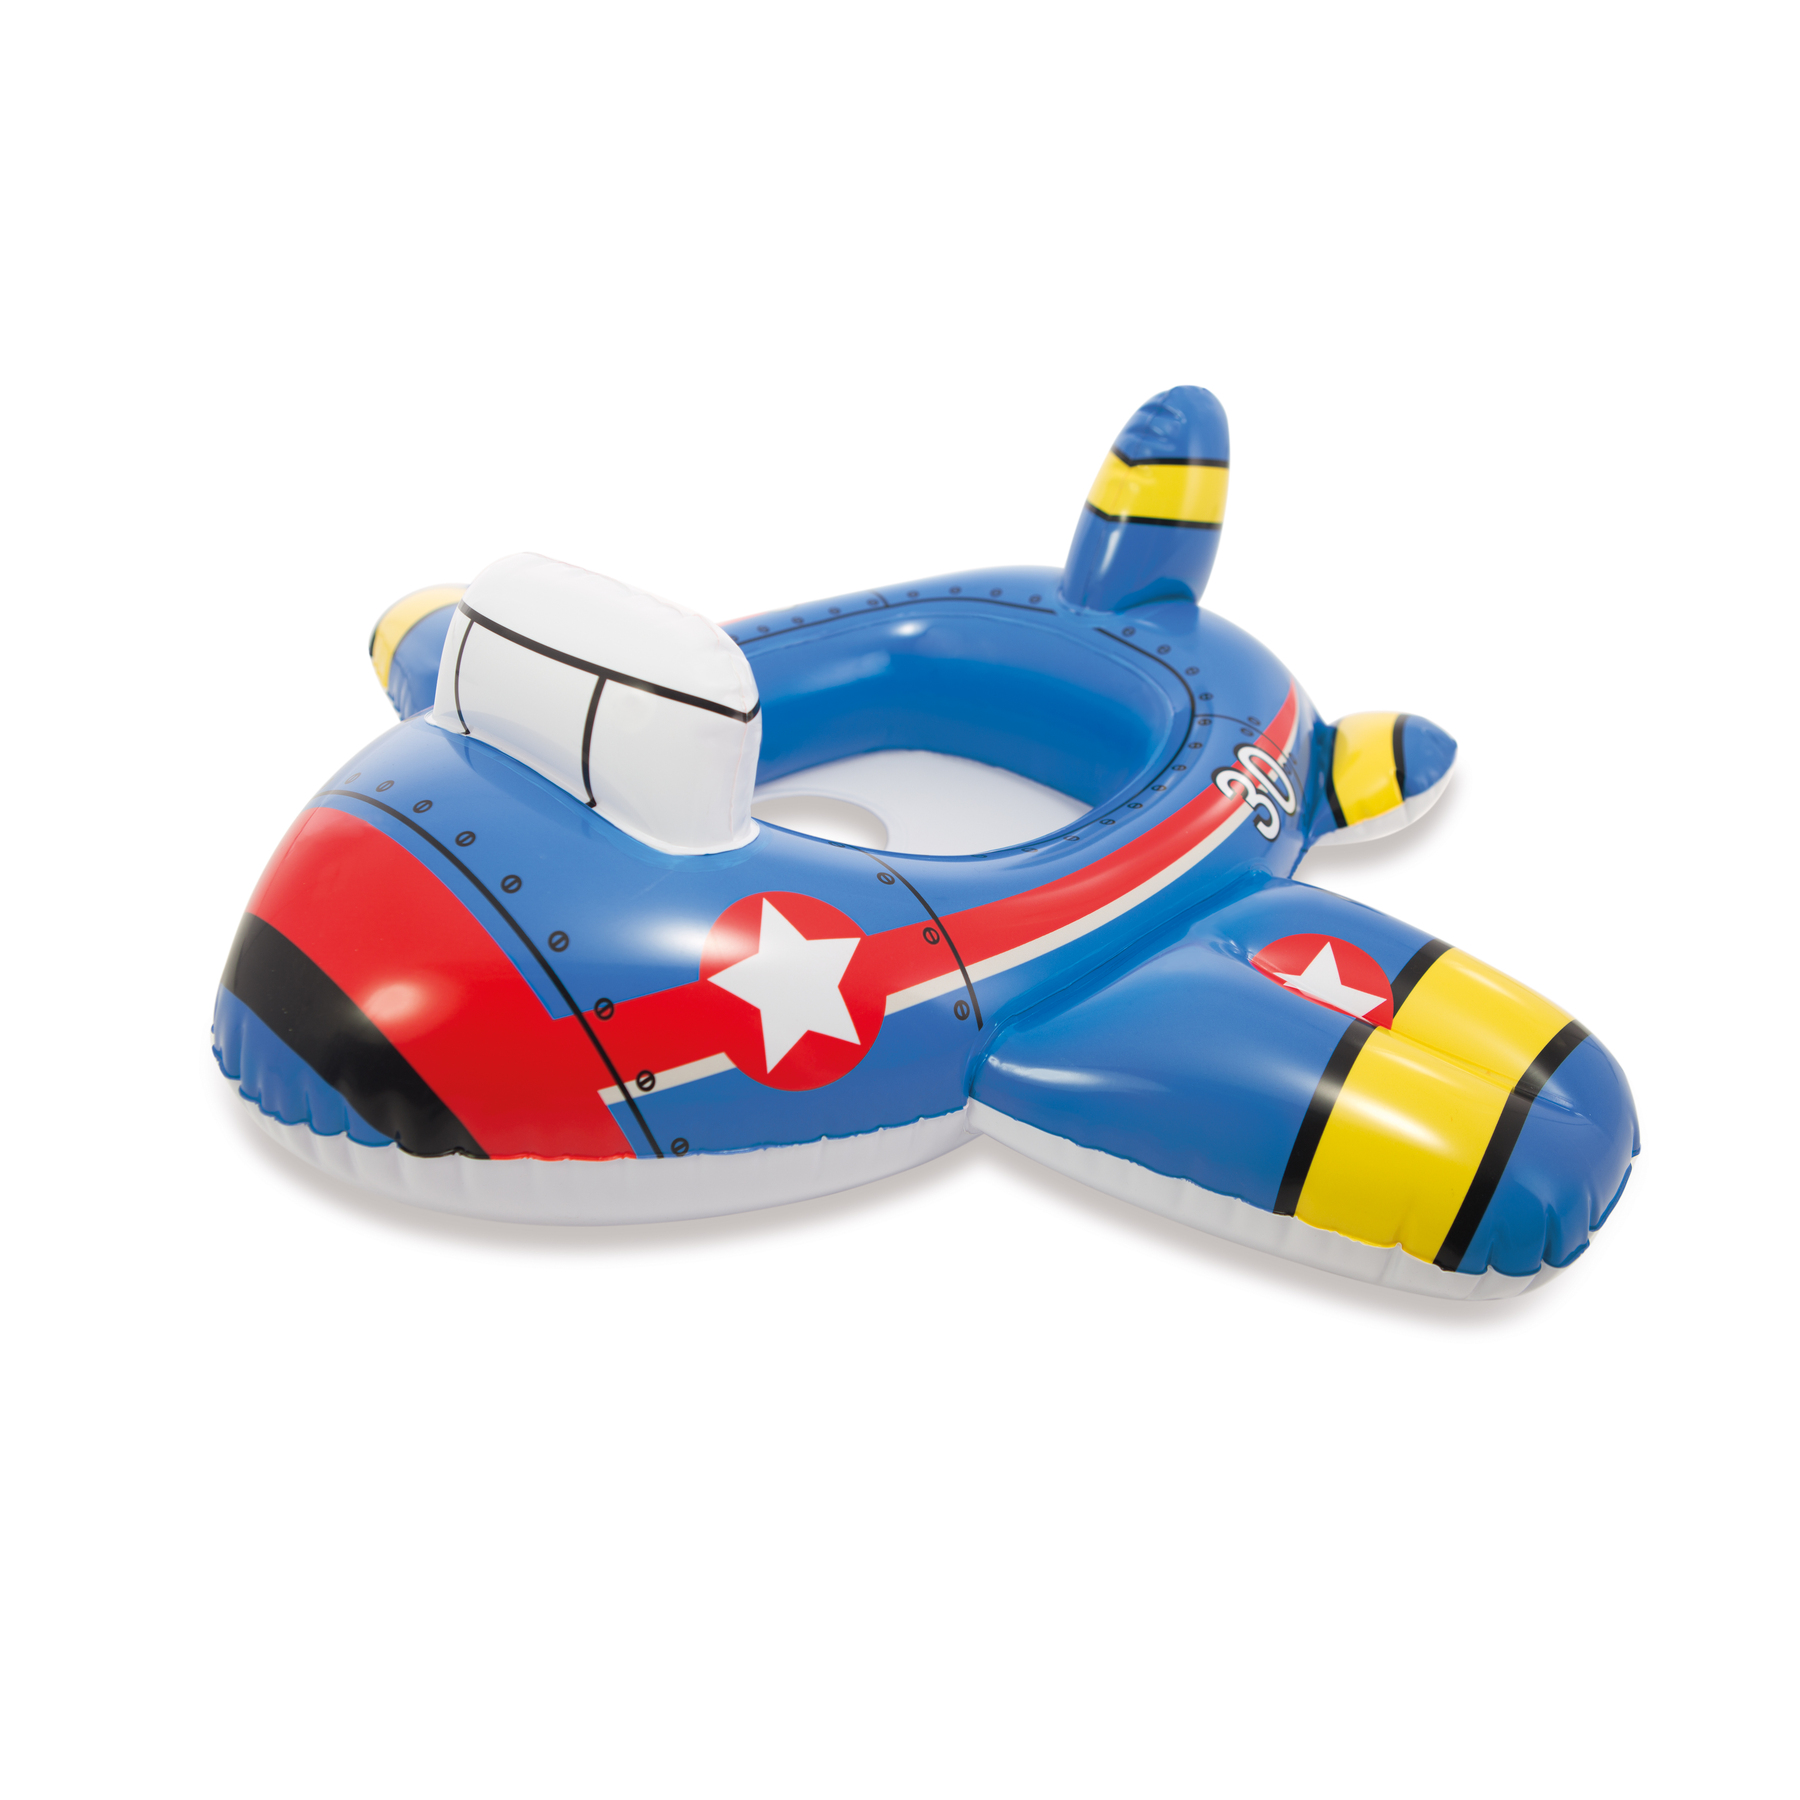 Inflatable Circle Baby, Boat, плотик, Raft For Children, For Swimming, 89 х76 Cm, From 1 To 3 Years Old, With Legs, Item No. 59586